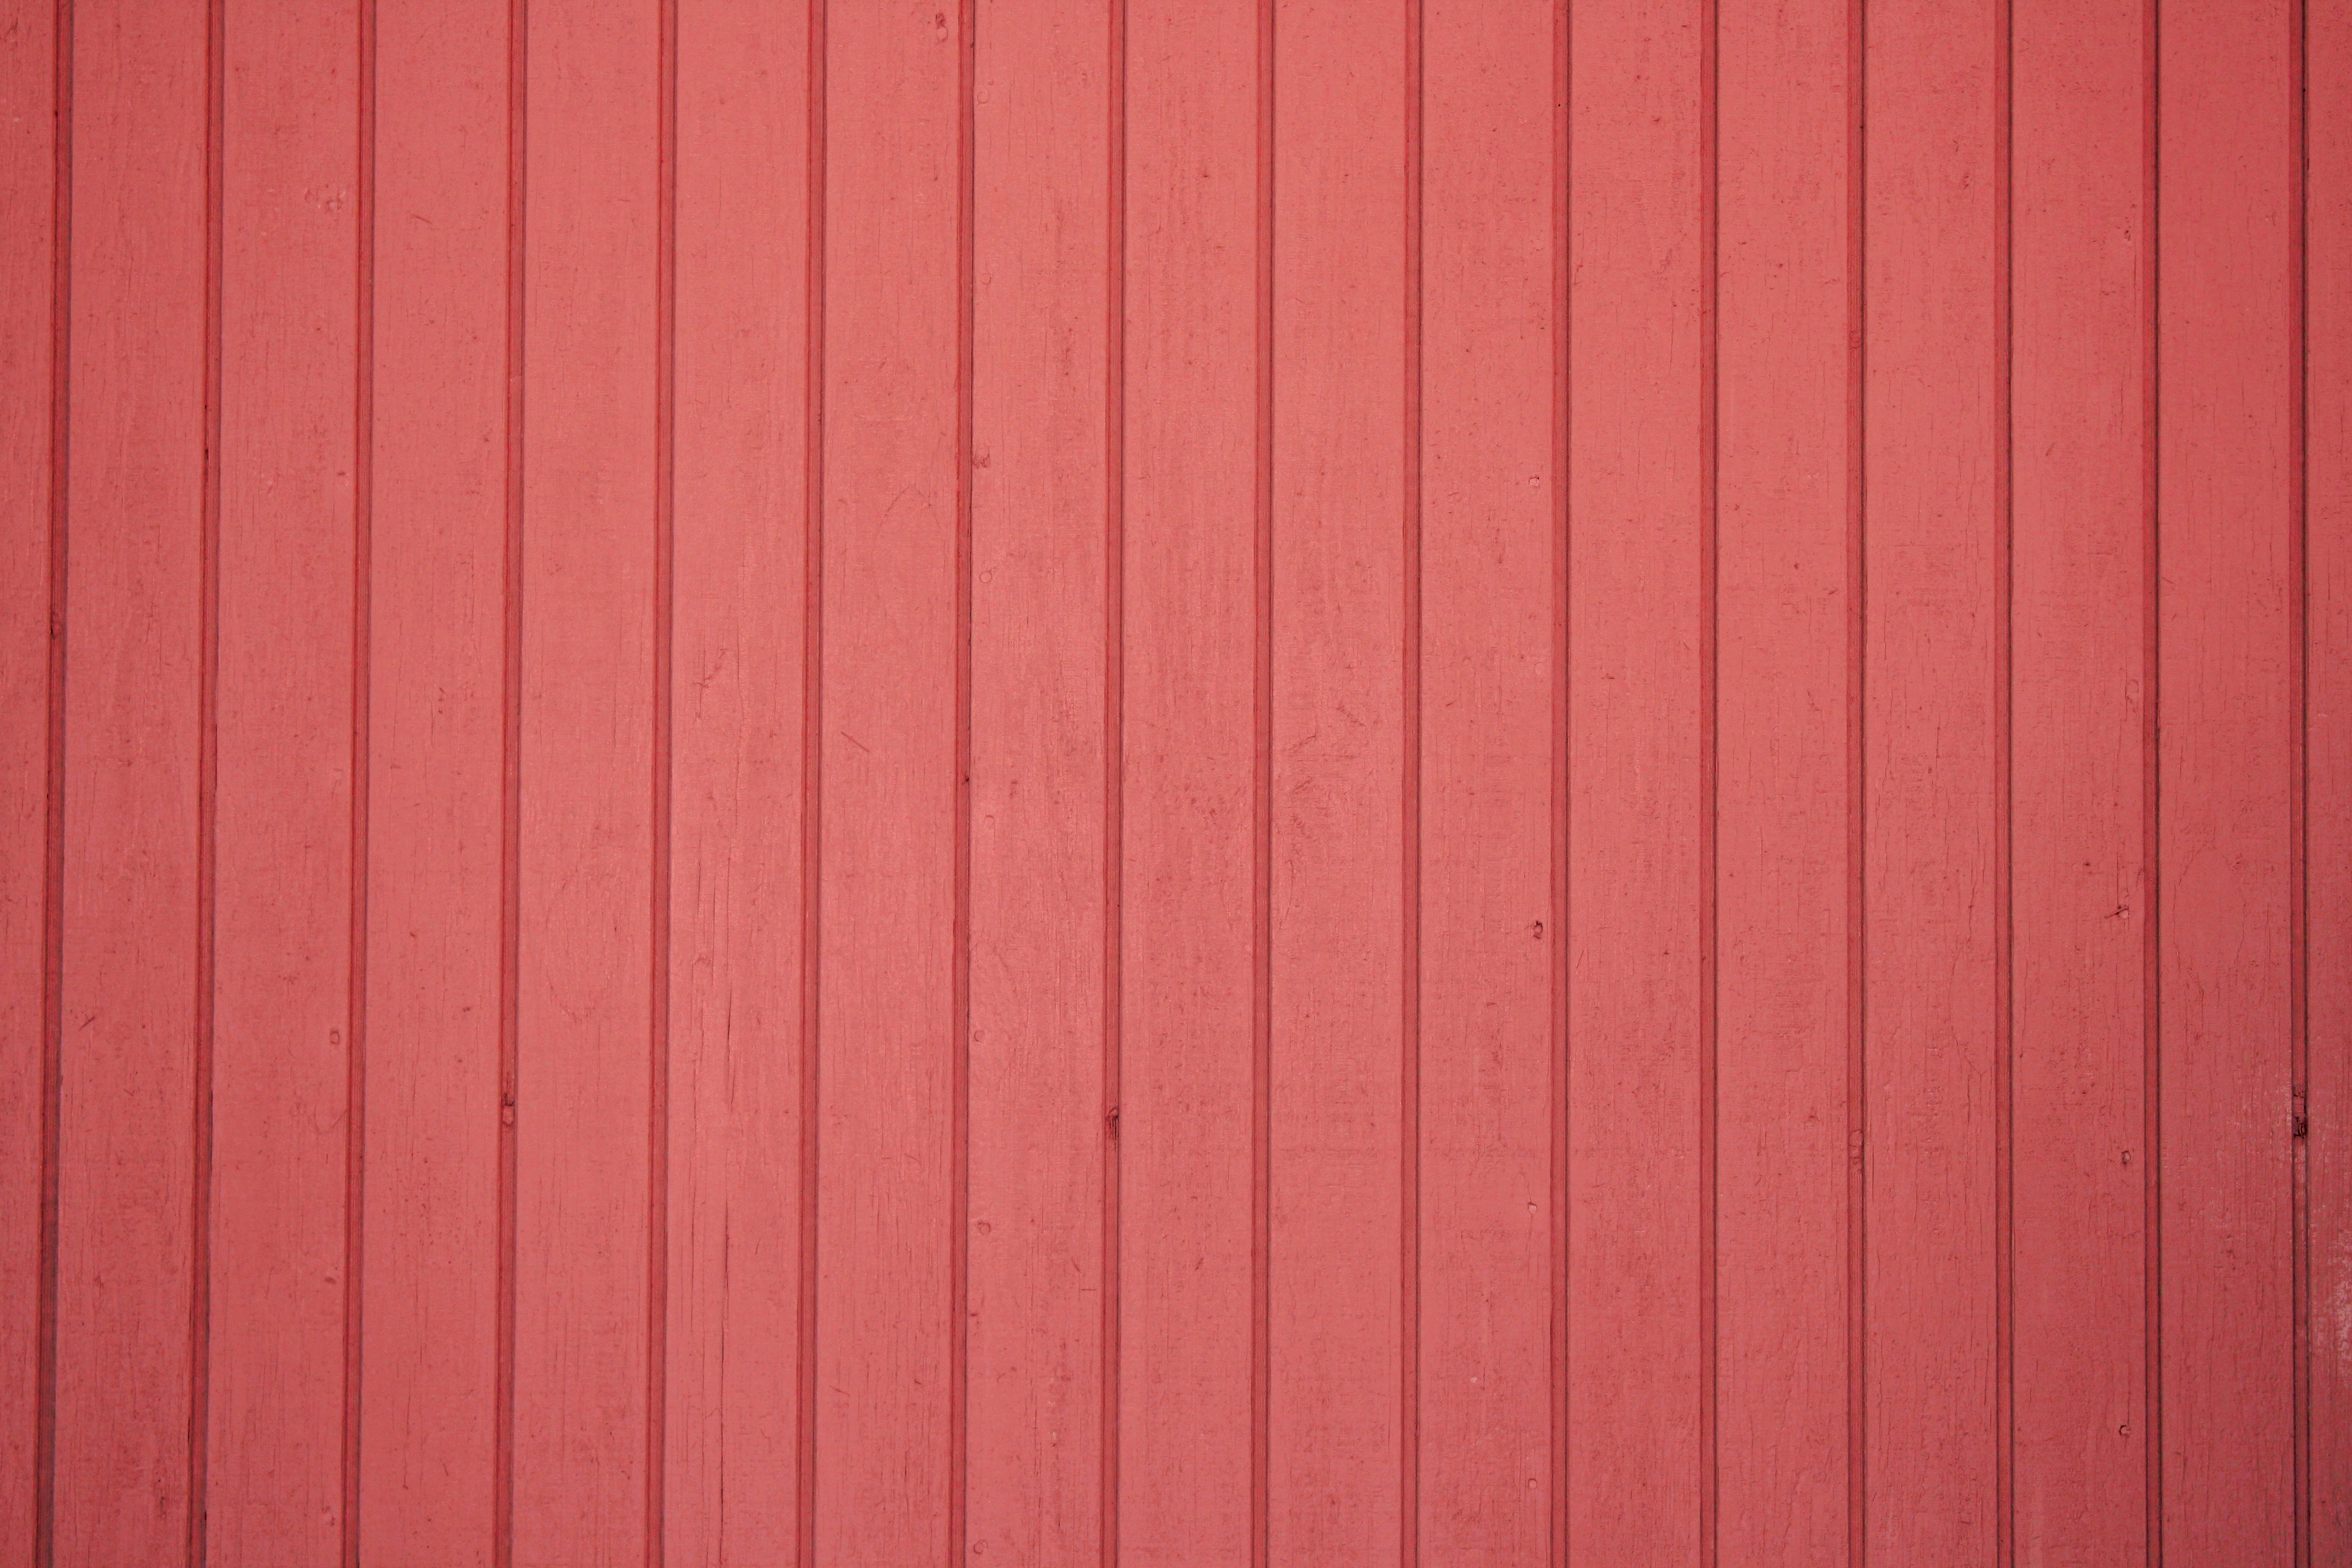 Red Painted Vertical Siding Texture Picture Free Photograph Photos Public Domain